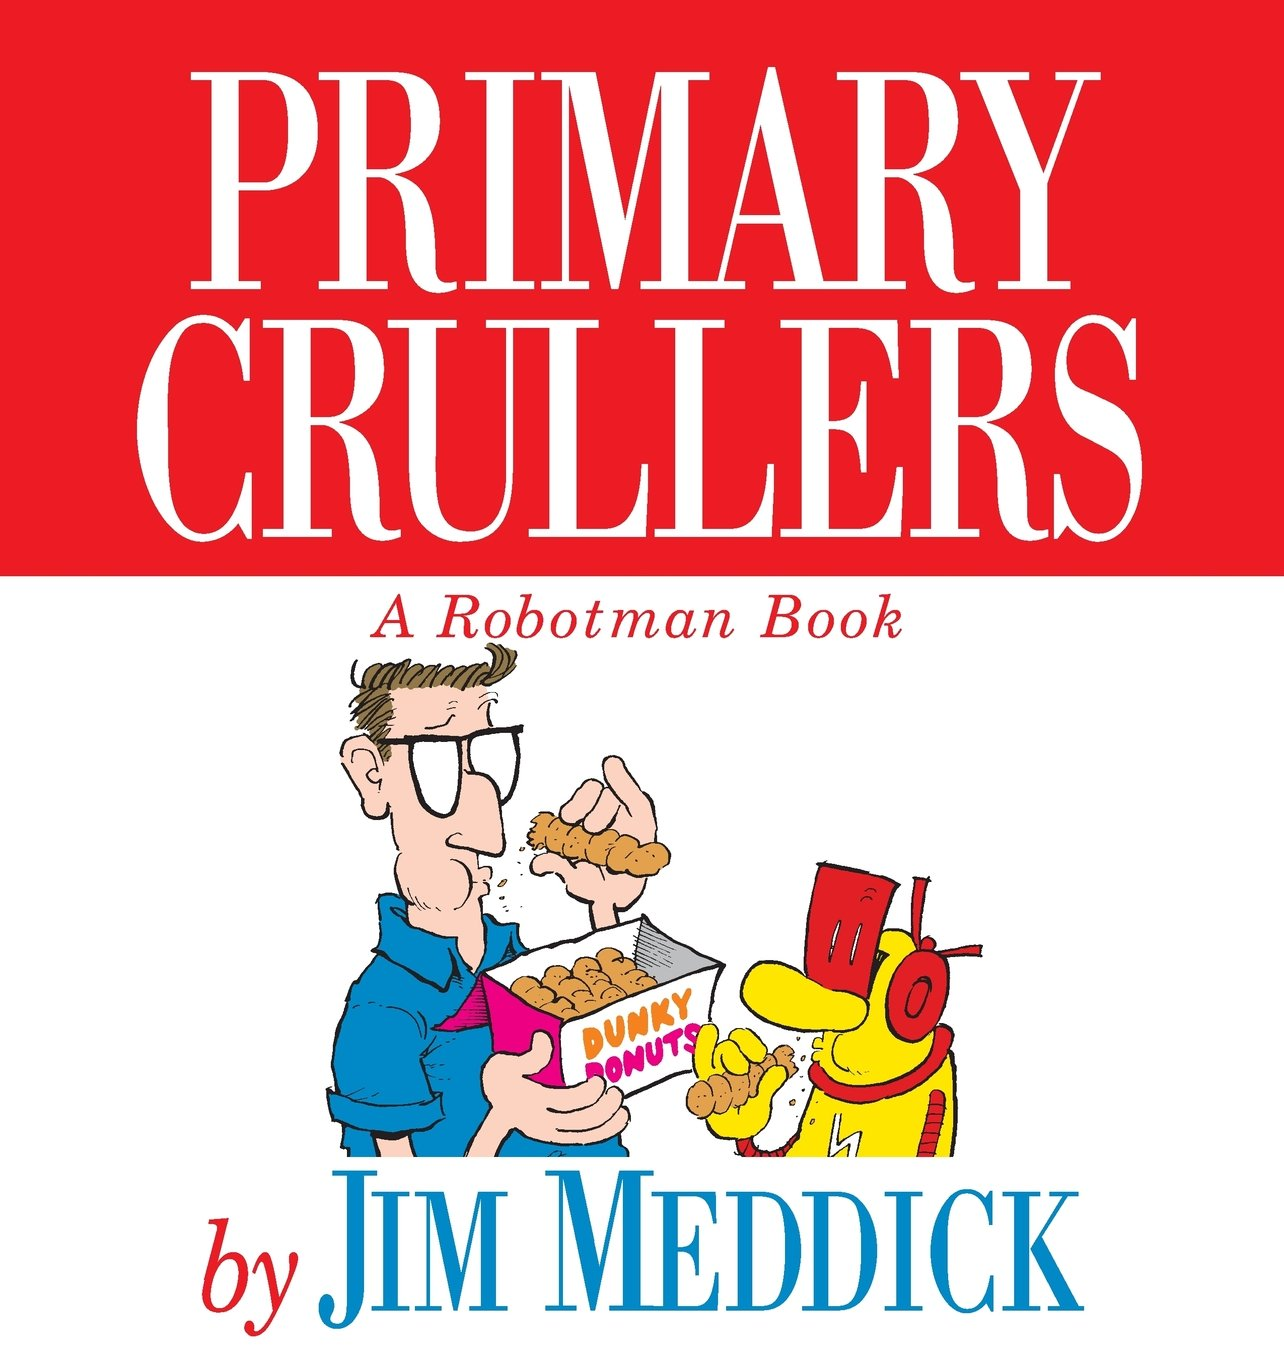 Image result for primary crullers